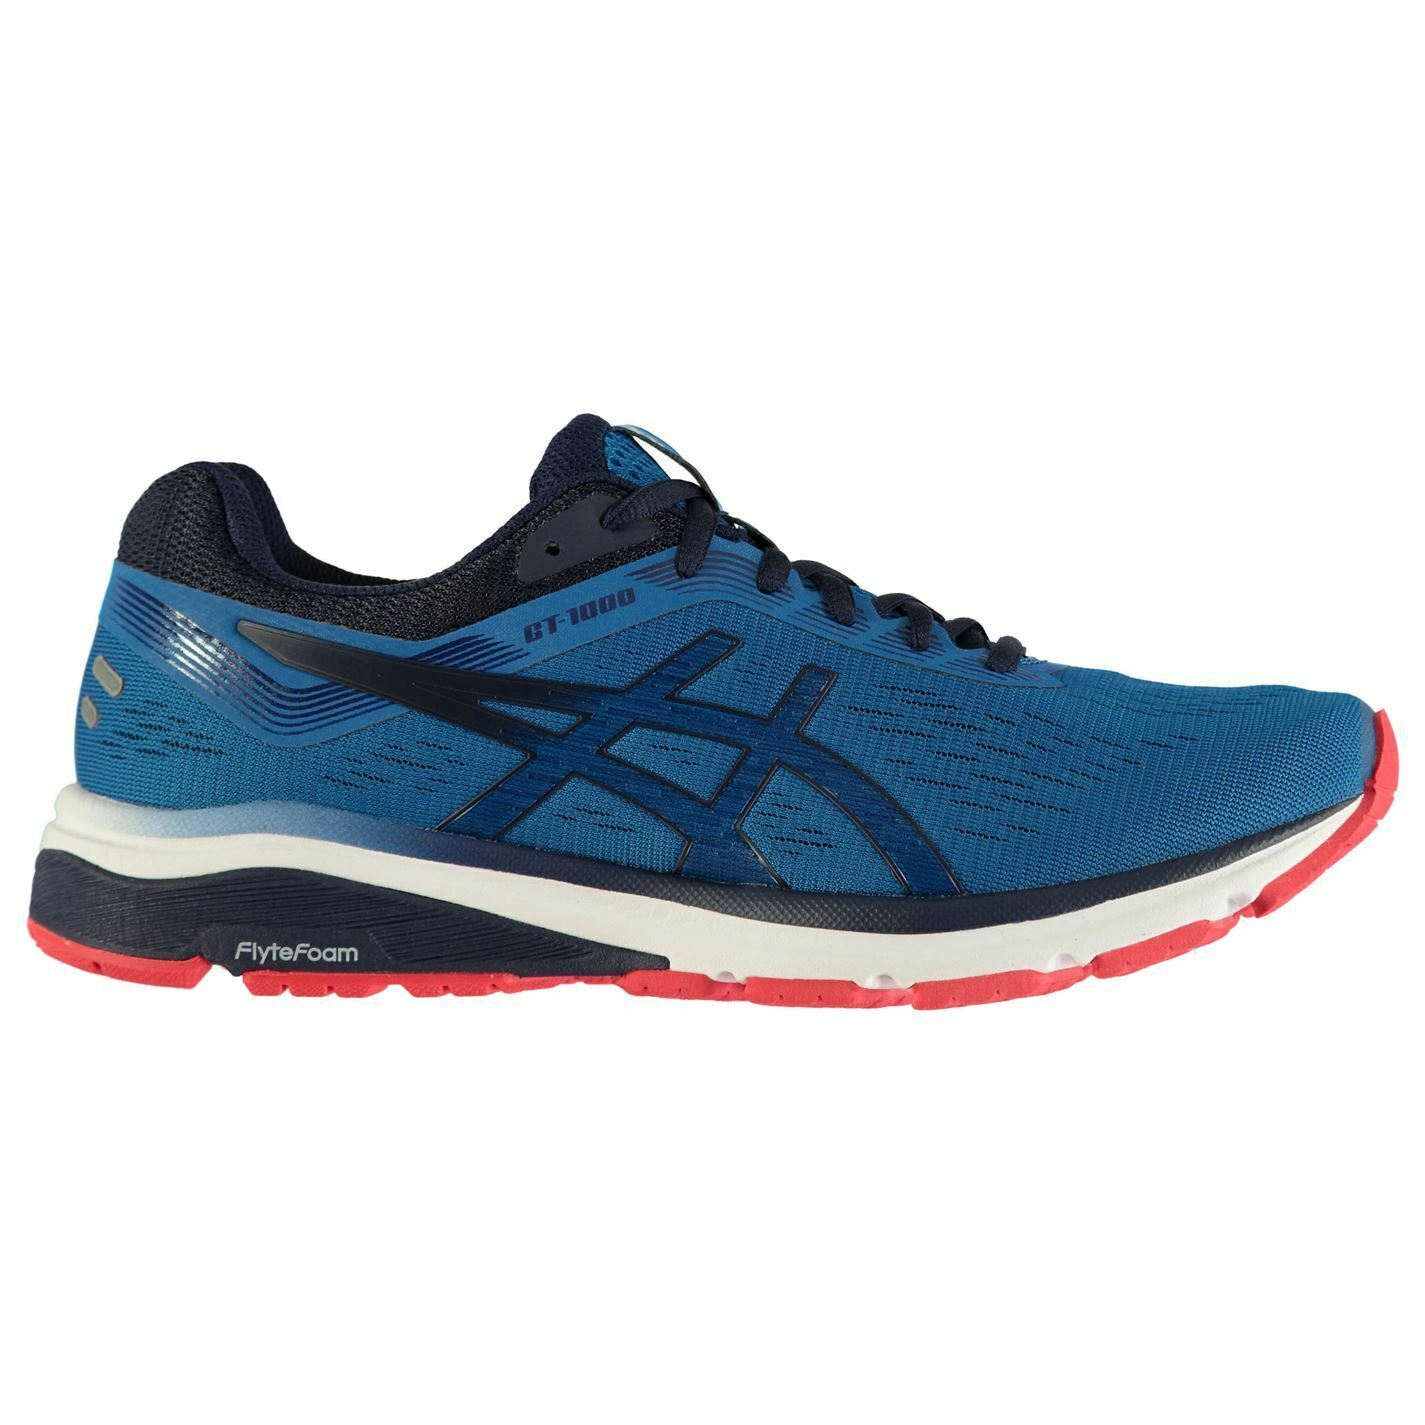 Asics Mens Gt 1000 V7 Running shoes Athletic Trainers Sneakers Sport Footwear